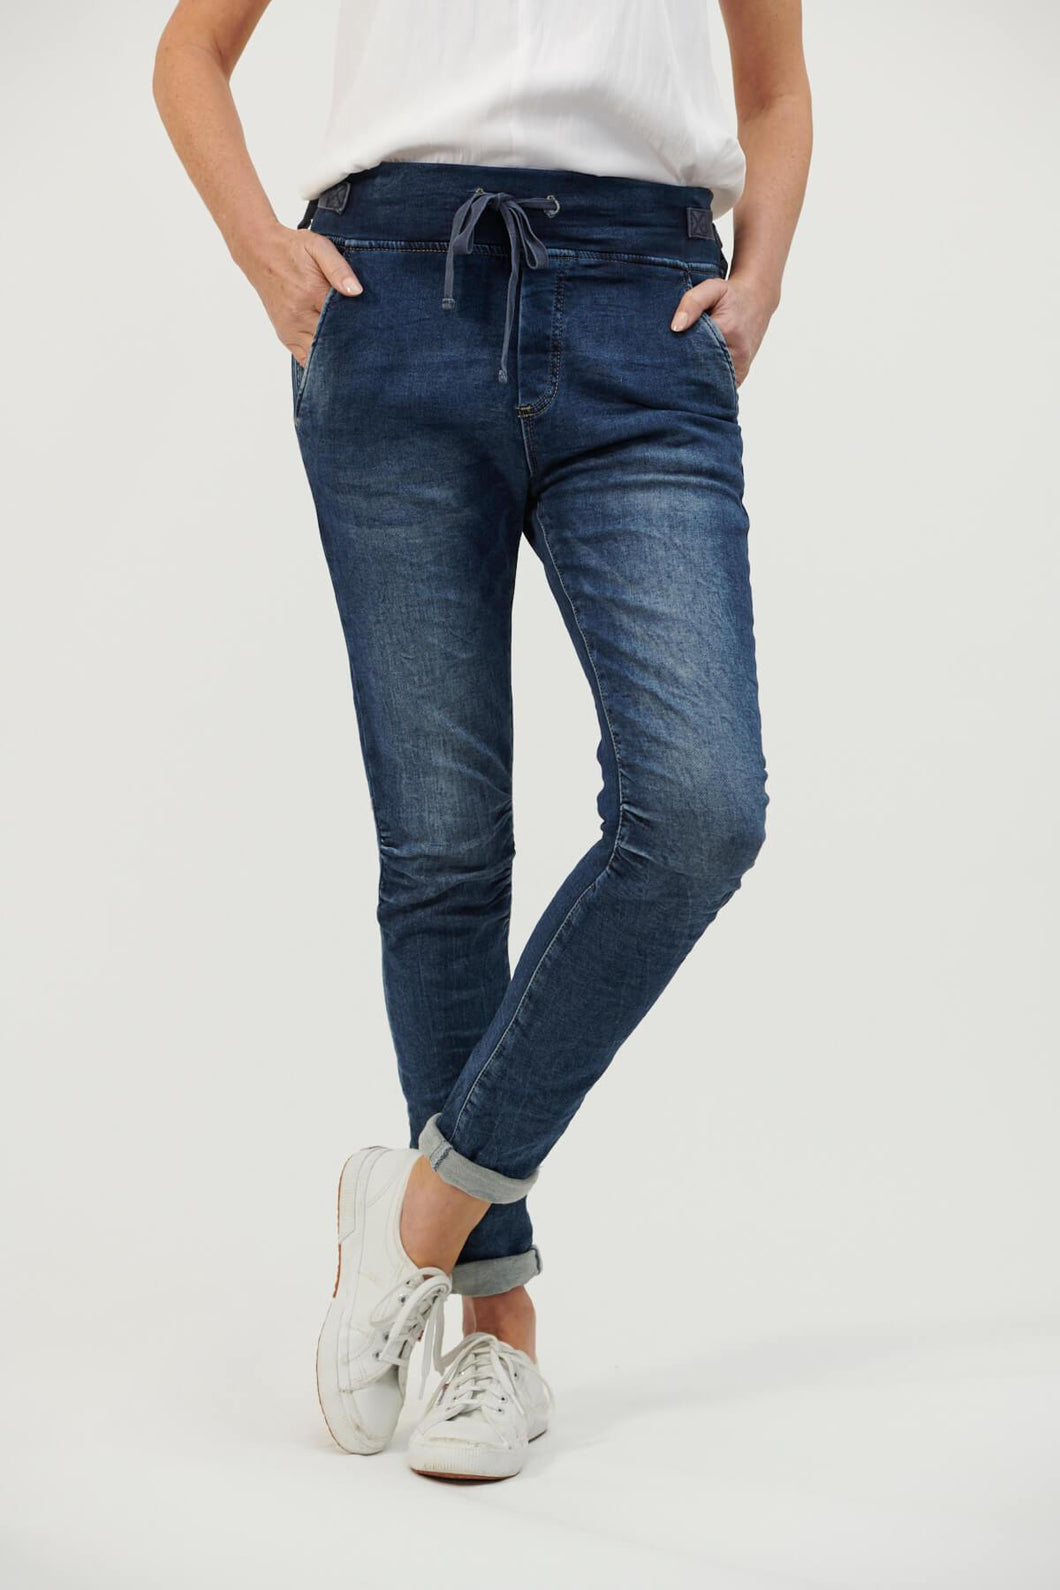 ITALIAN STAR PULL UP JEANS DENIM JOGGERS ITALIAN STAR TIE WAIST DENIM JOGGERS - BASIC STATE